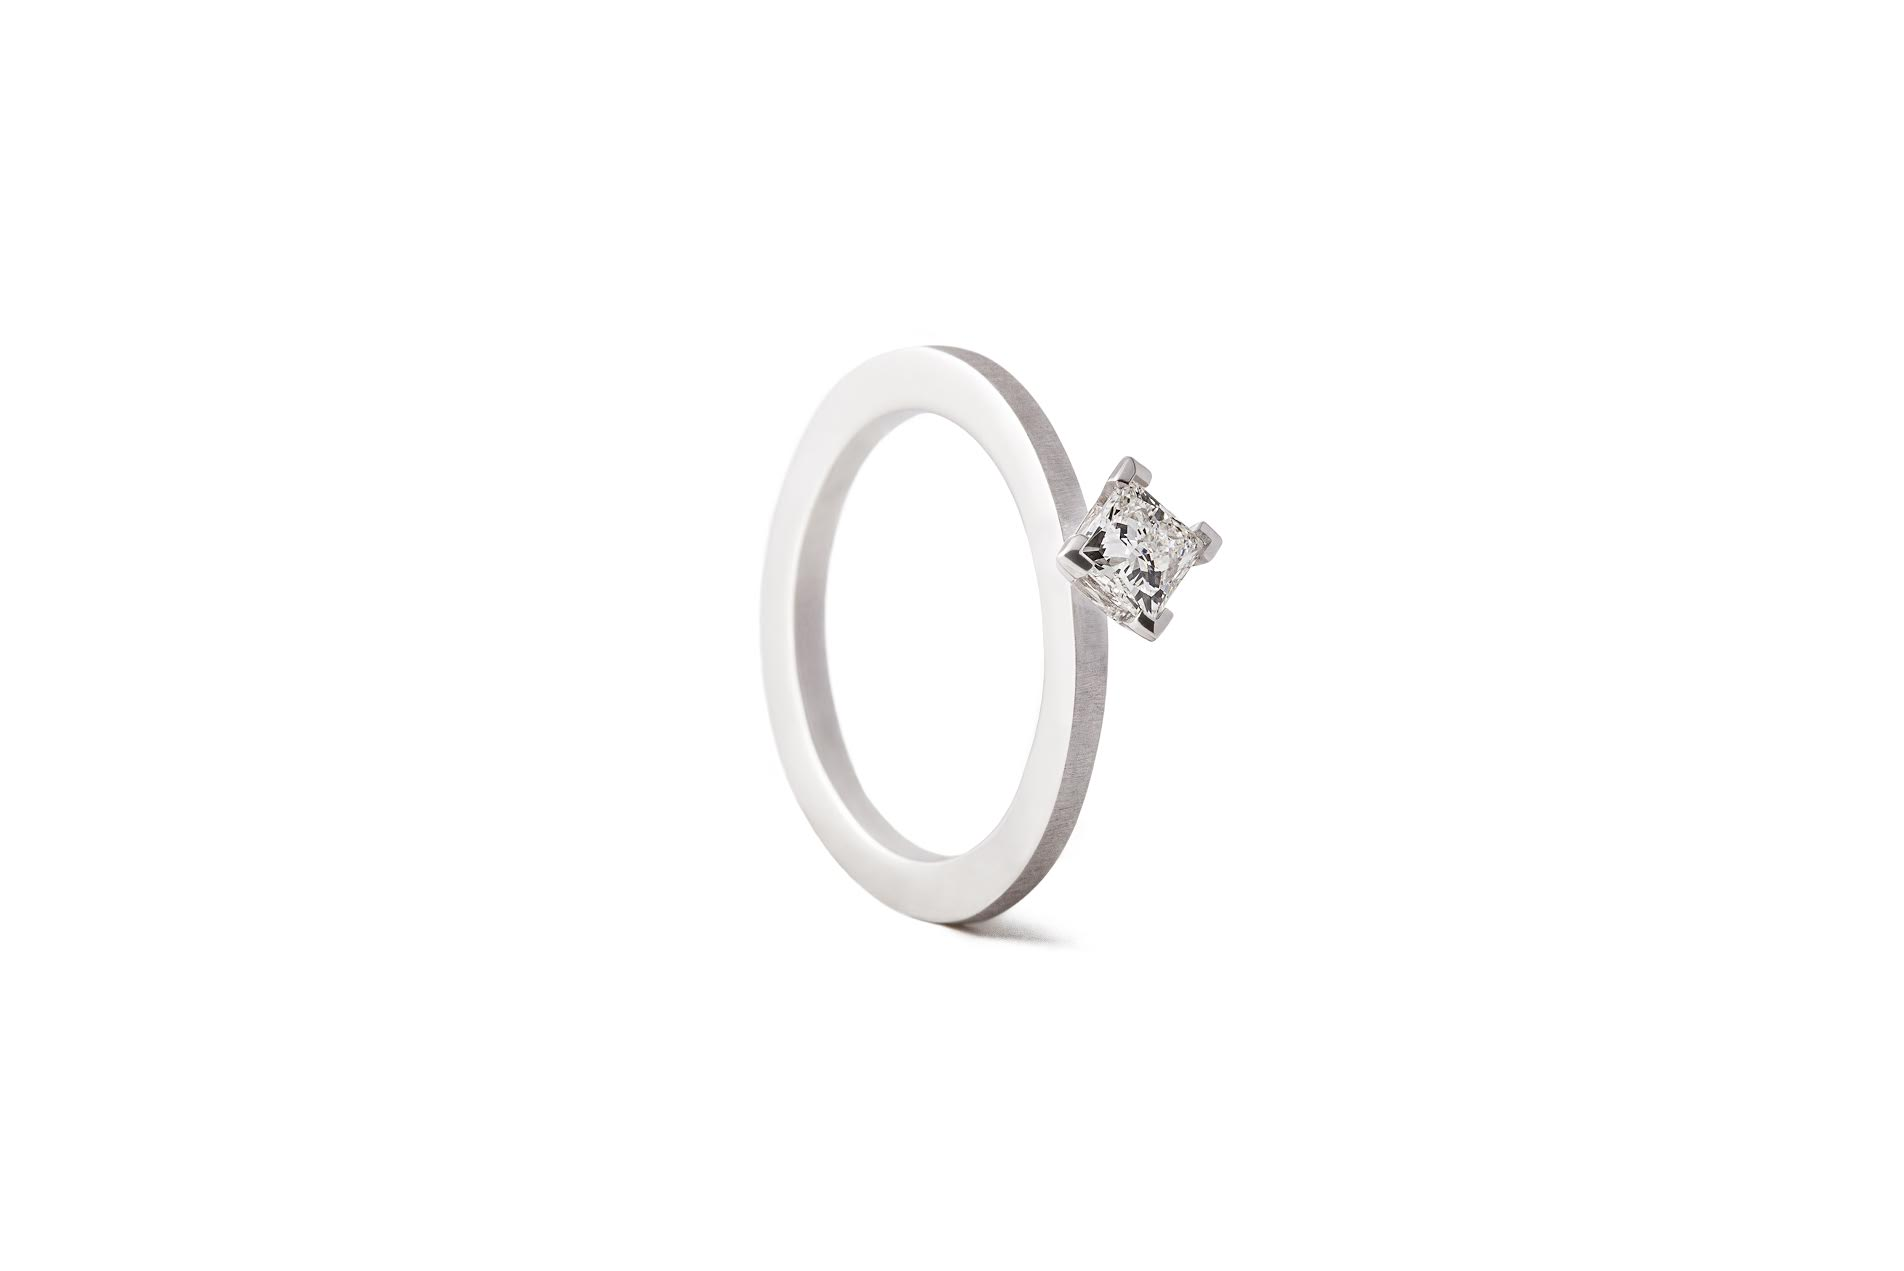 CREST M RING 18K WHITE GOLD PRINCESS DIAMOND 0.40CT